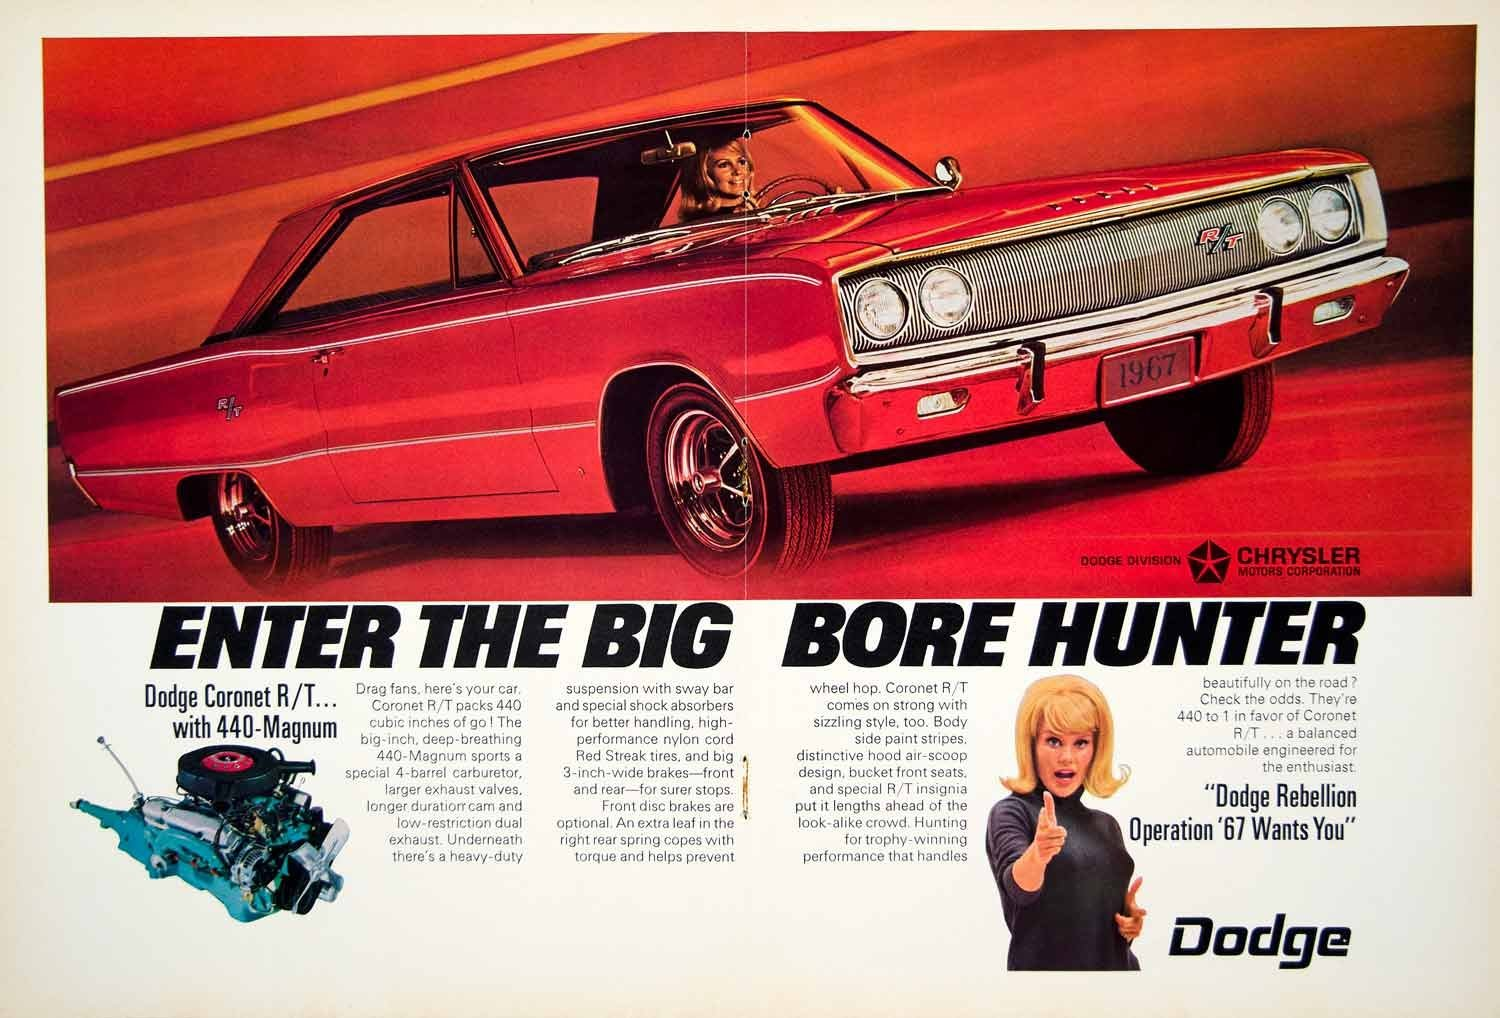 10 Best American Muscle Cars additionally Mopar 426 Hemi Engine Specs also 10 Best American Muscle Cars additionally 1967 Dodge Coro  Rt likewise Unscathed 1970 Dodge Super Bee. on dodge 440 hemi engine